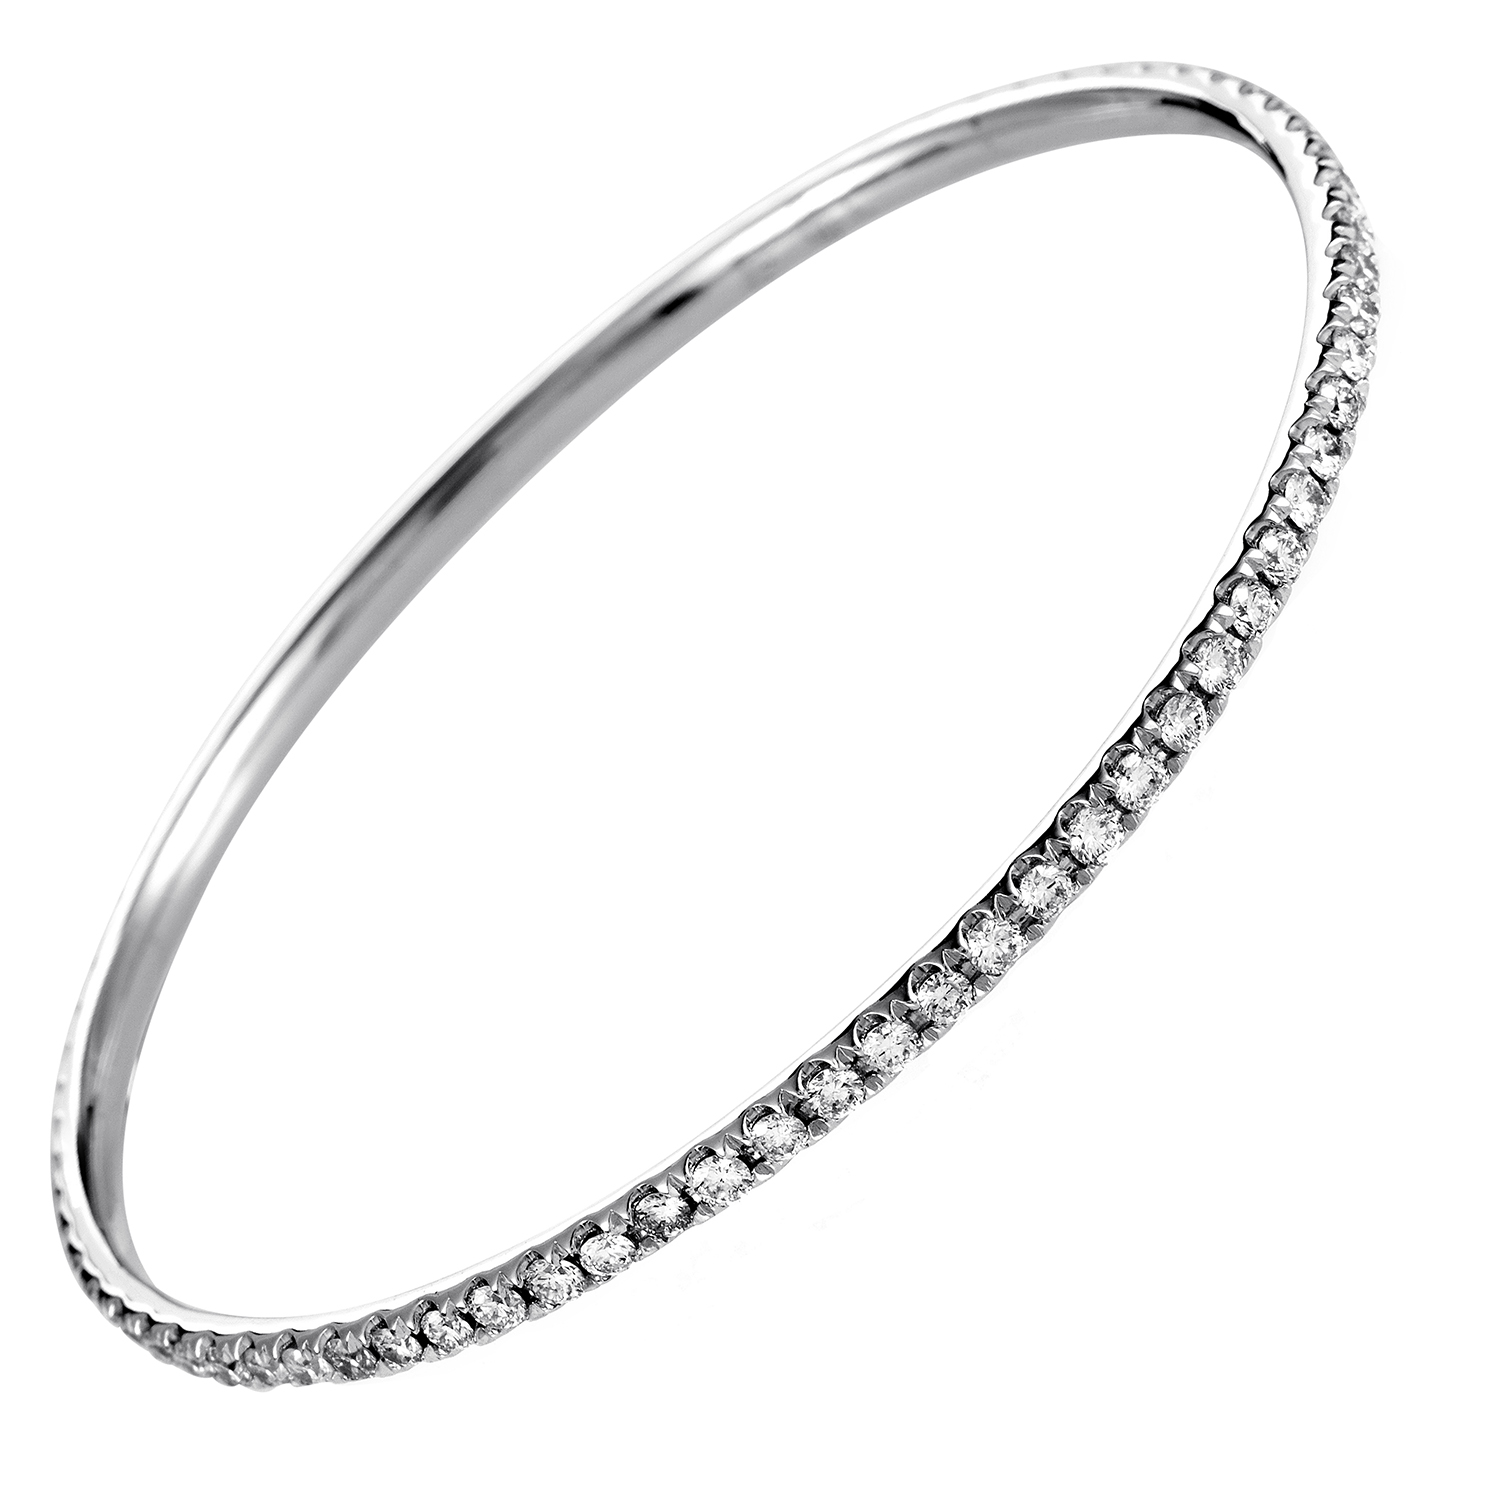 Women's 18K White Gold Diamond Bangle Bracelet ALB-7508W